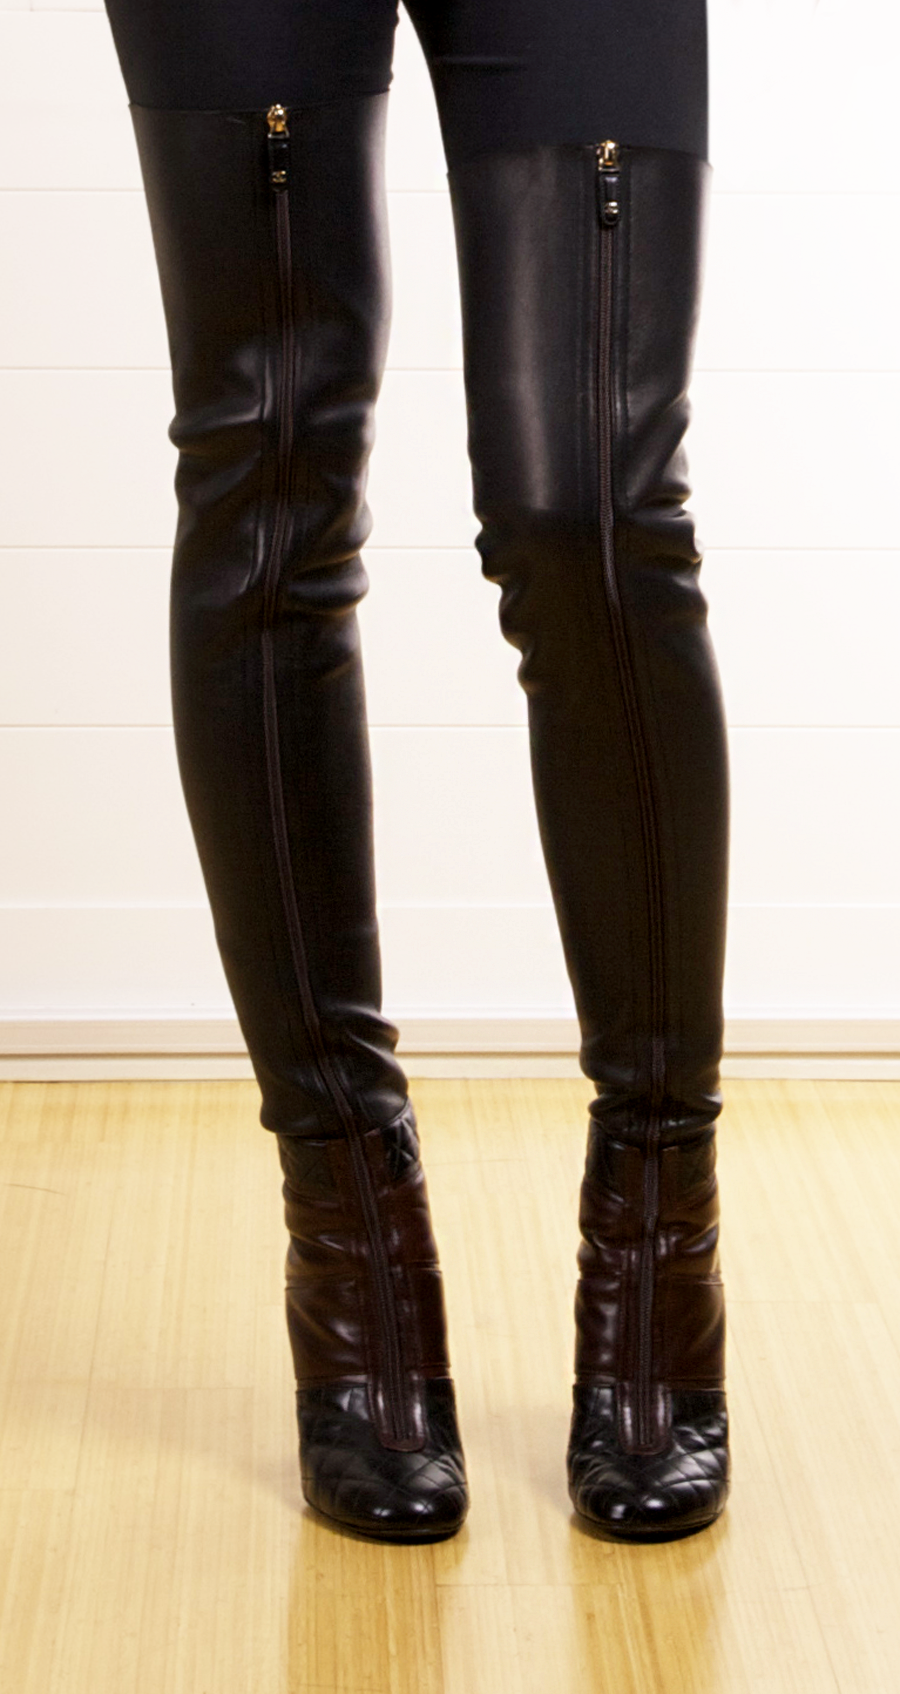 Chanel Boots @gtl_clothing #getthelook http://gtl.clothing